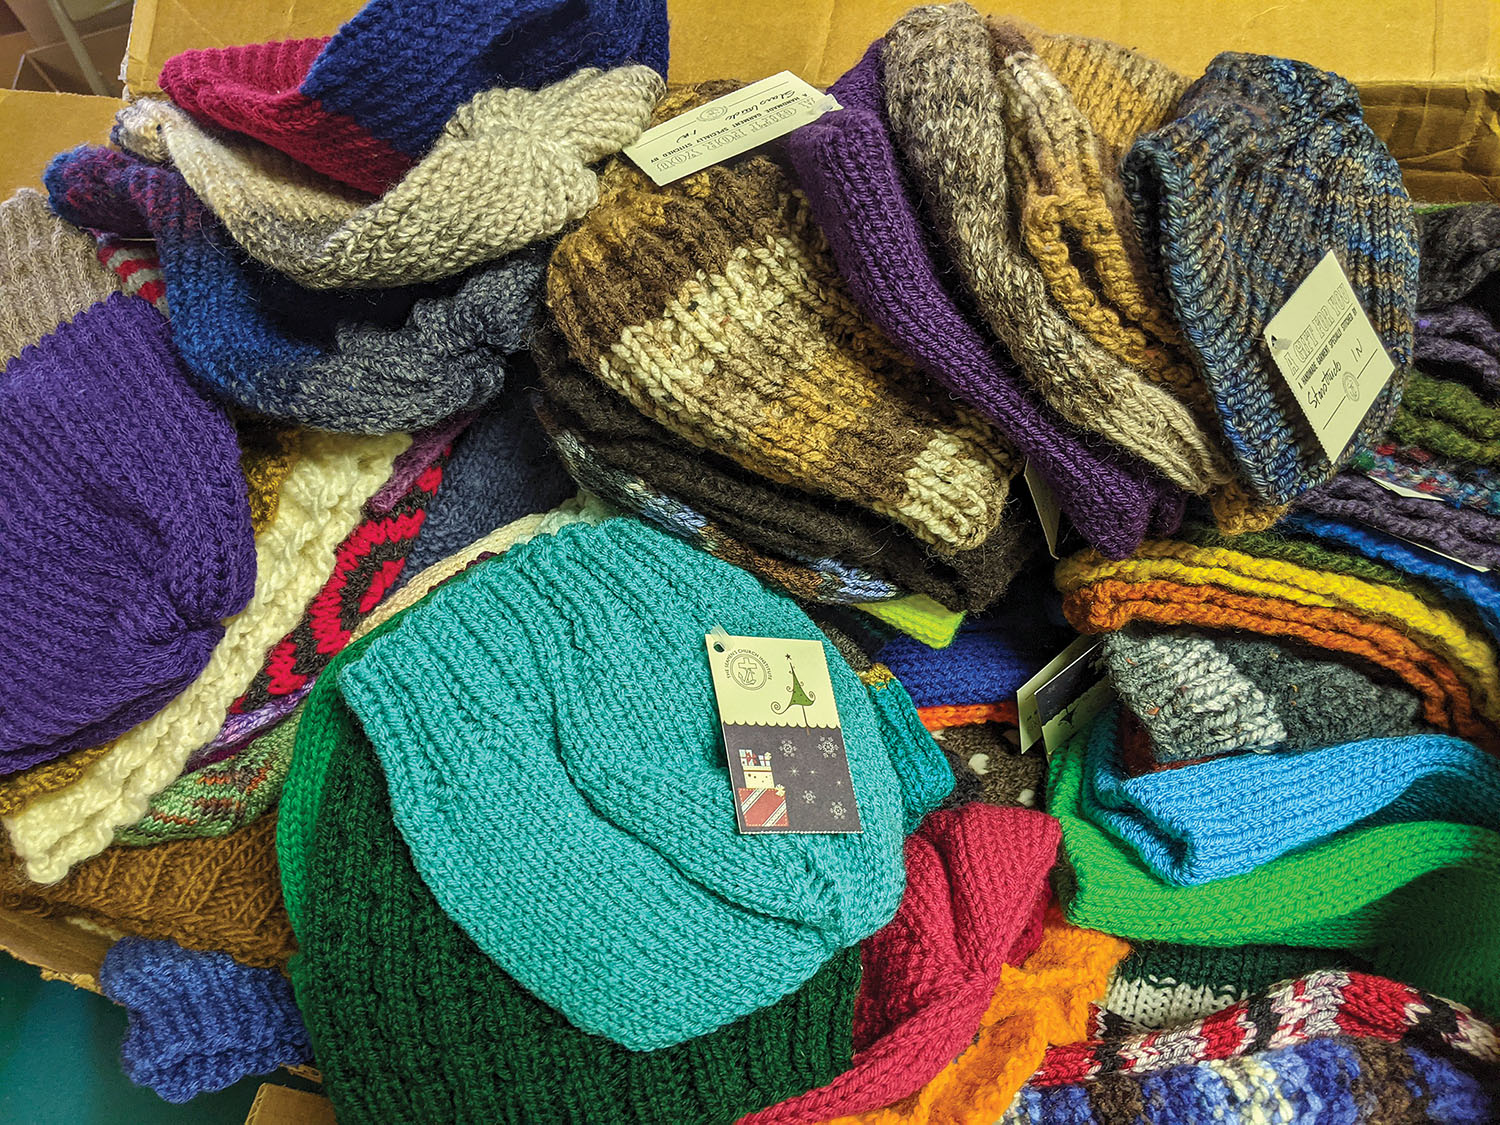 A sampling of colorful knitted hats bound for mariners this holiday season as part of Seamen's Church Institute's Christmas At Sea ministry. Photo by Frank McCormack)